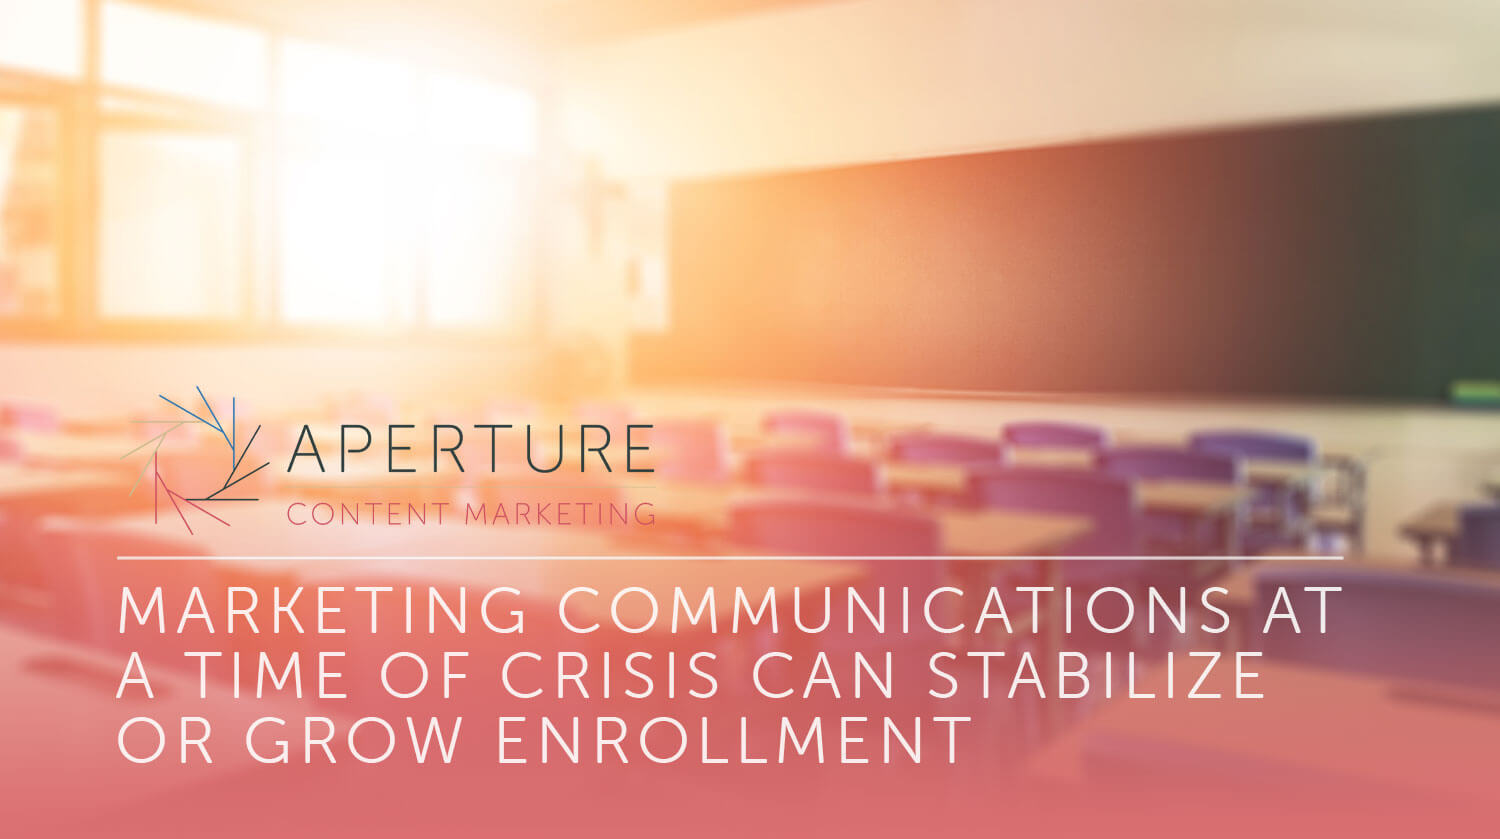 Marketing Communications at a Time of Crisis Can Stabilize or Grow Enrollment